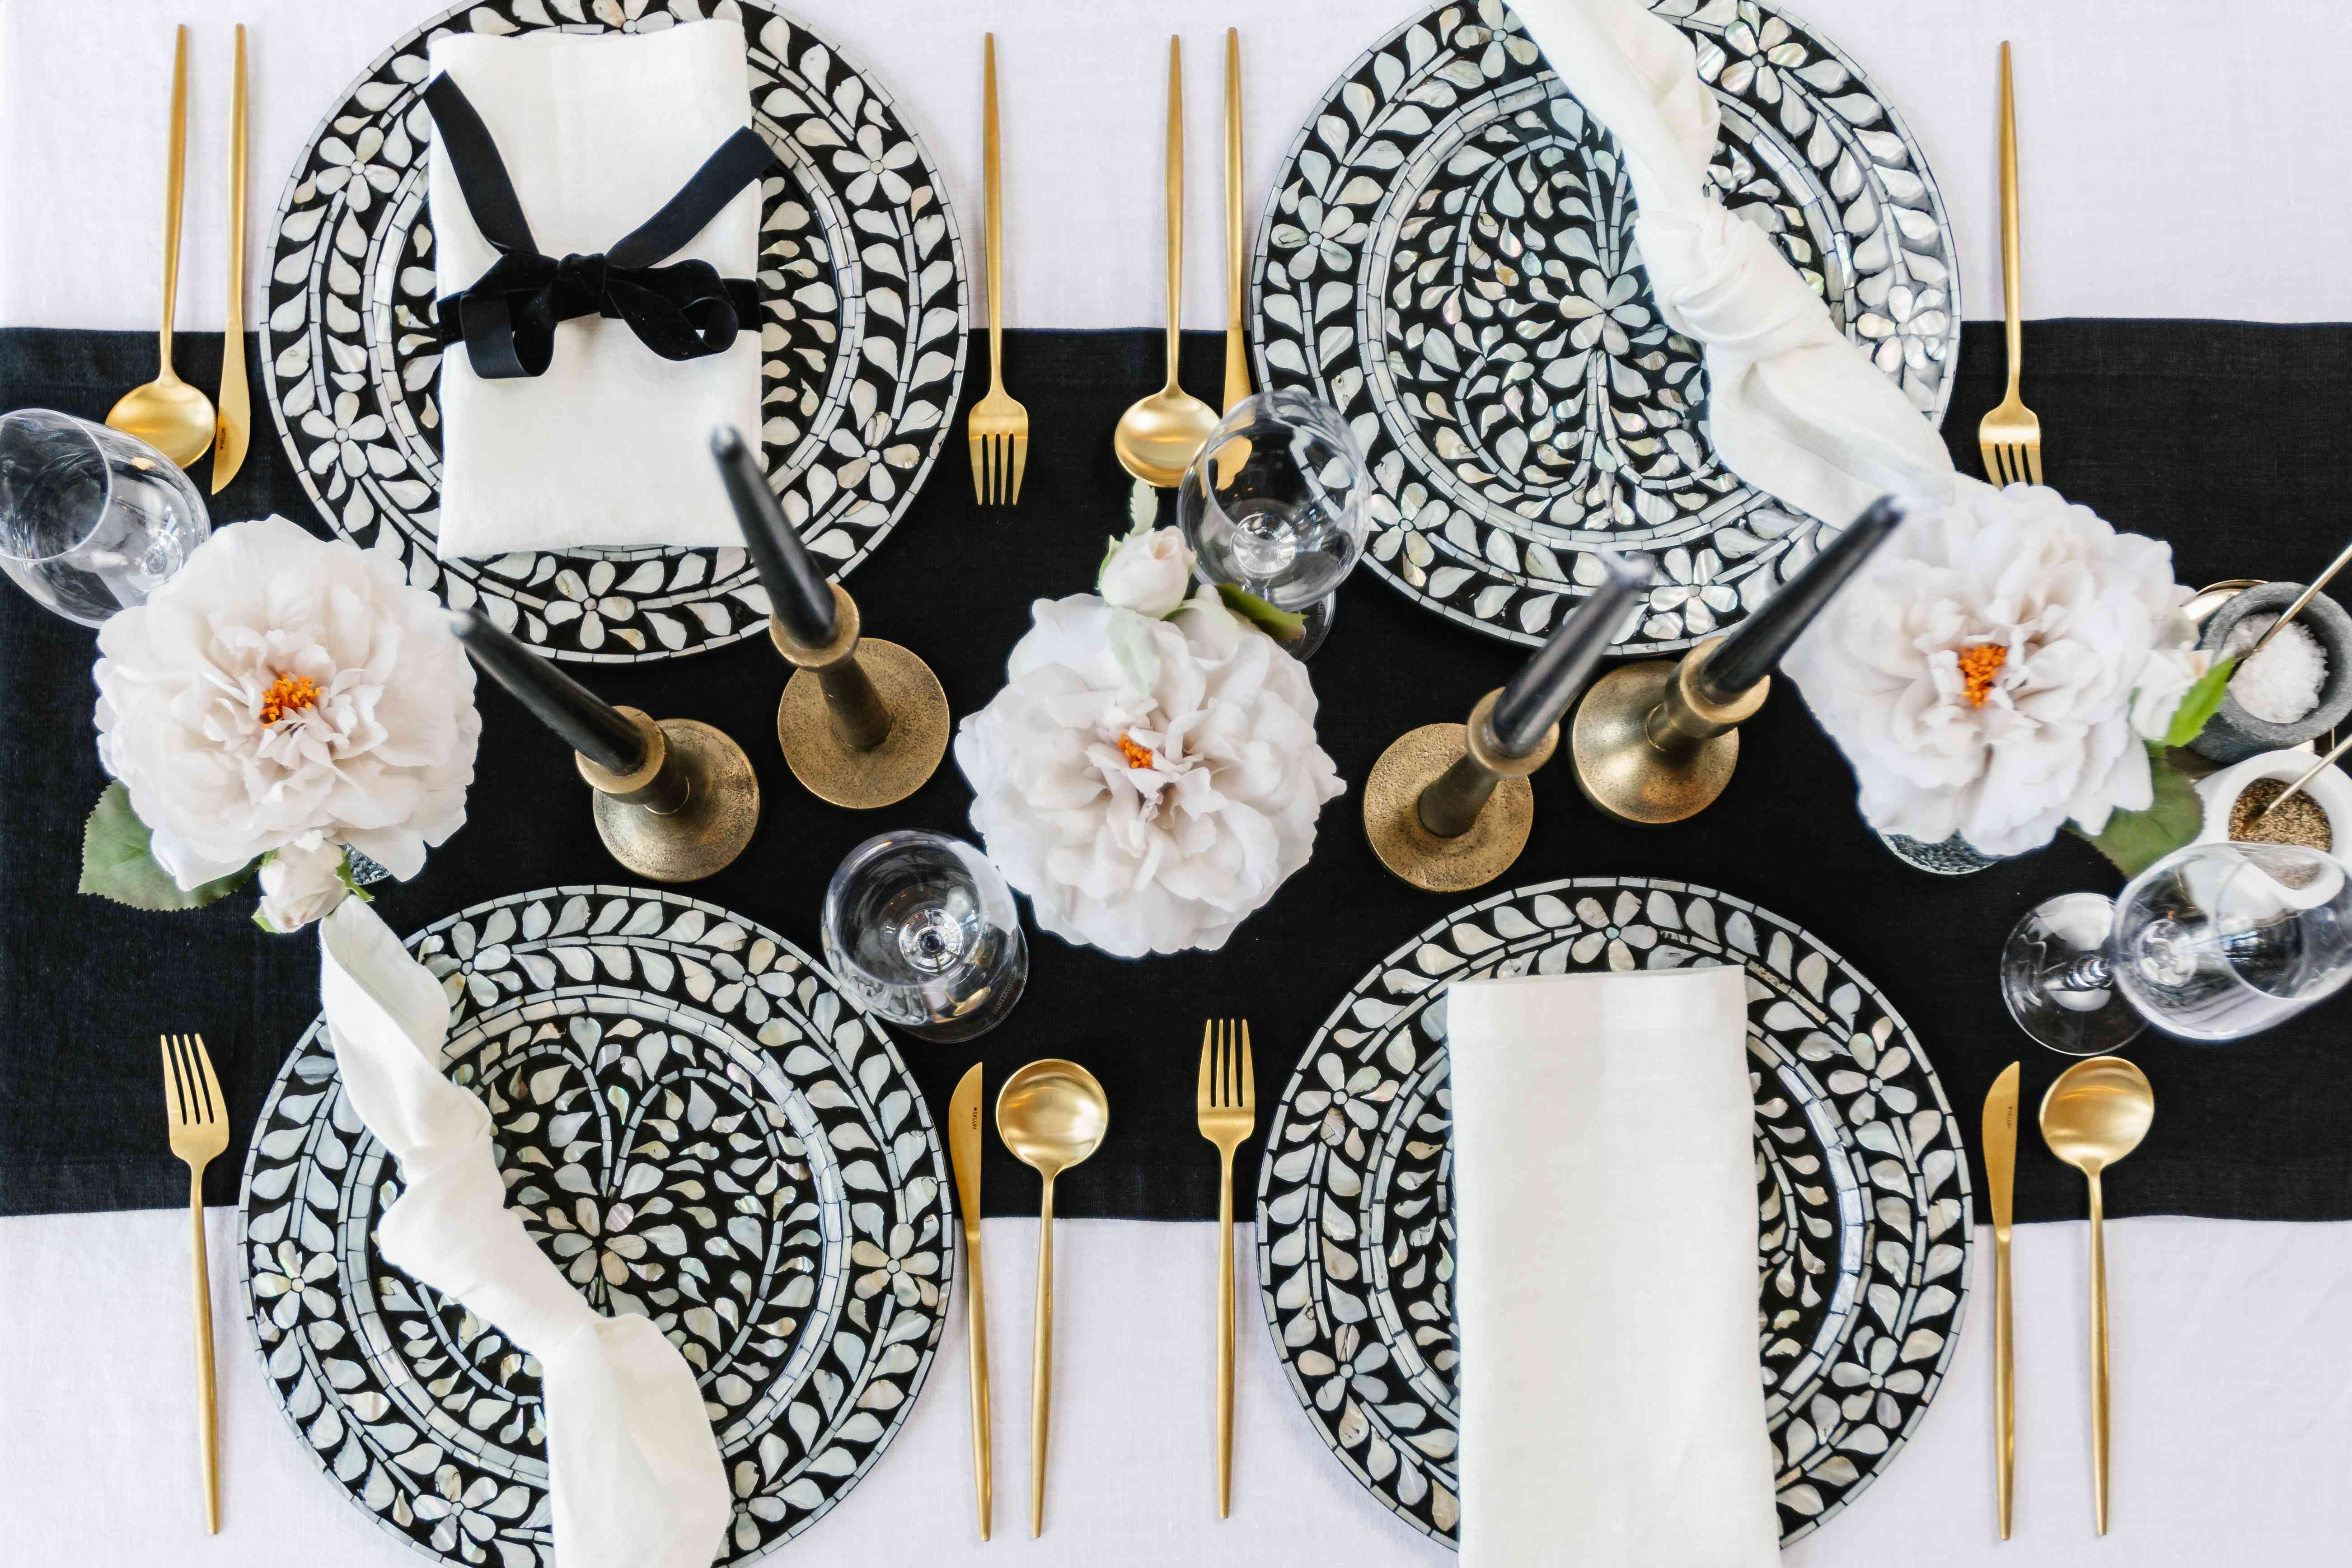 Fall tablescape in black and white tones